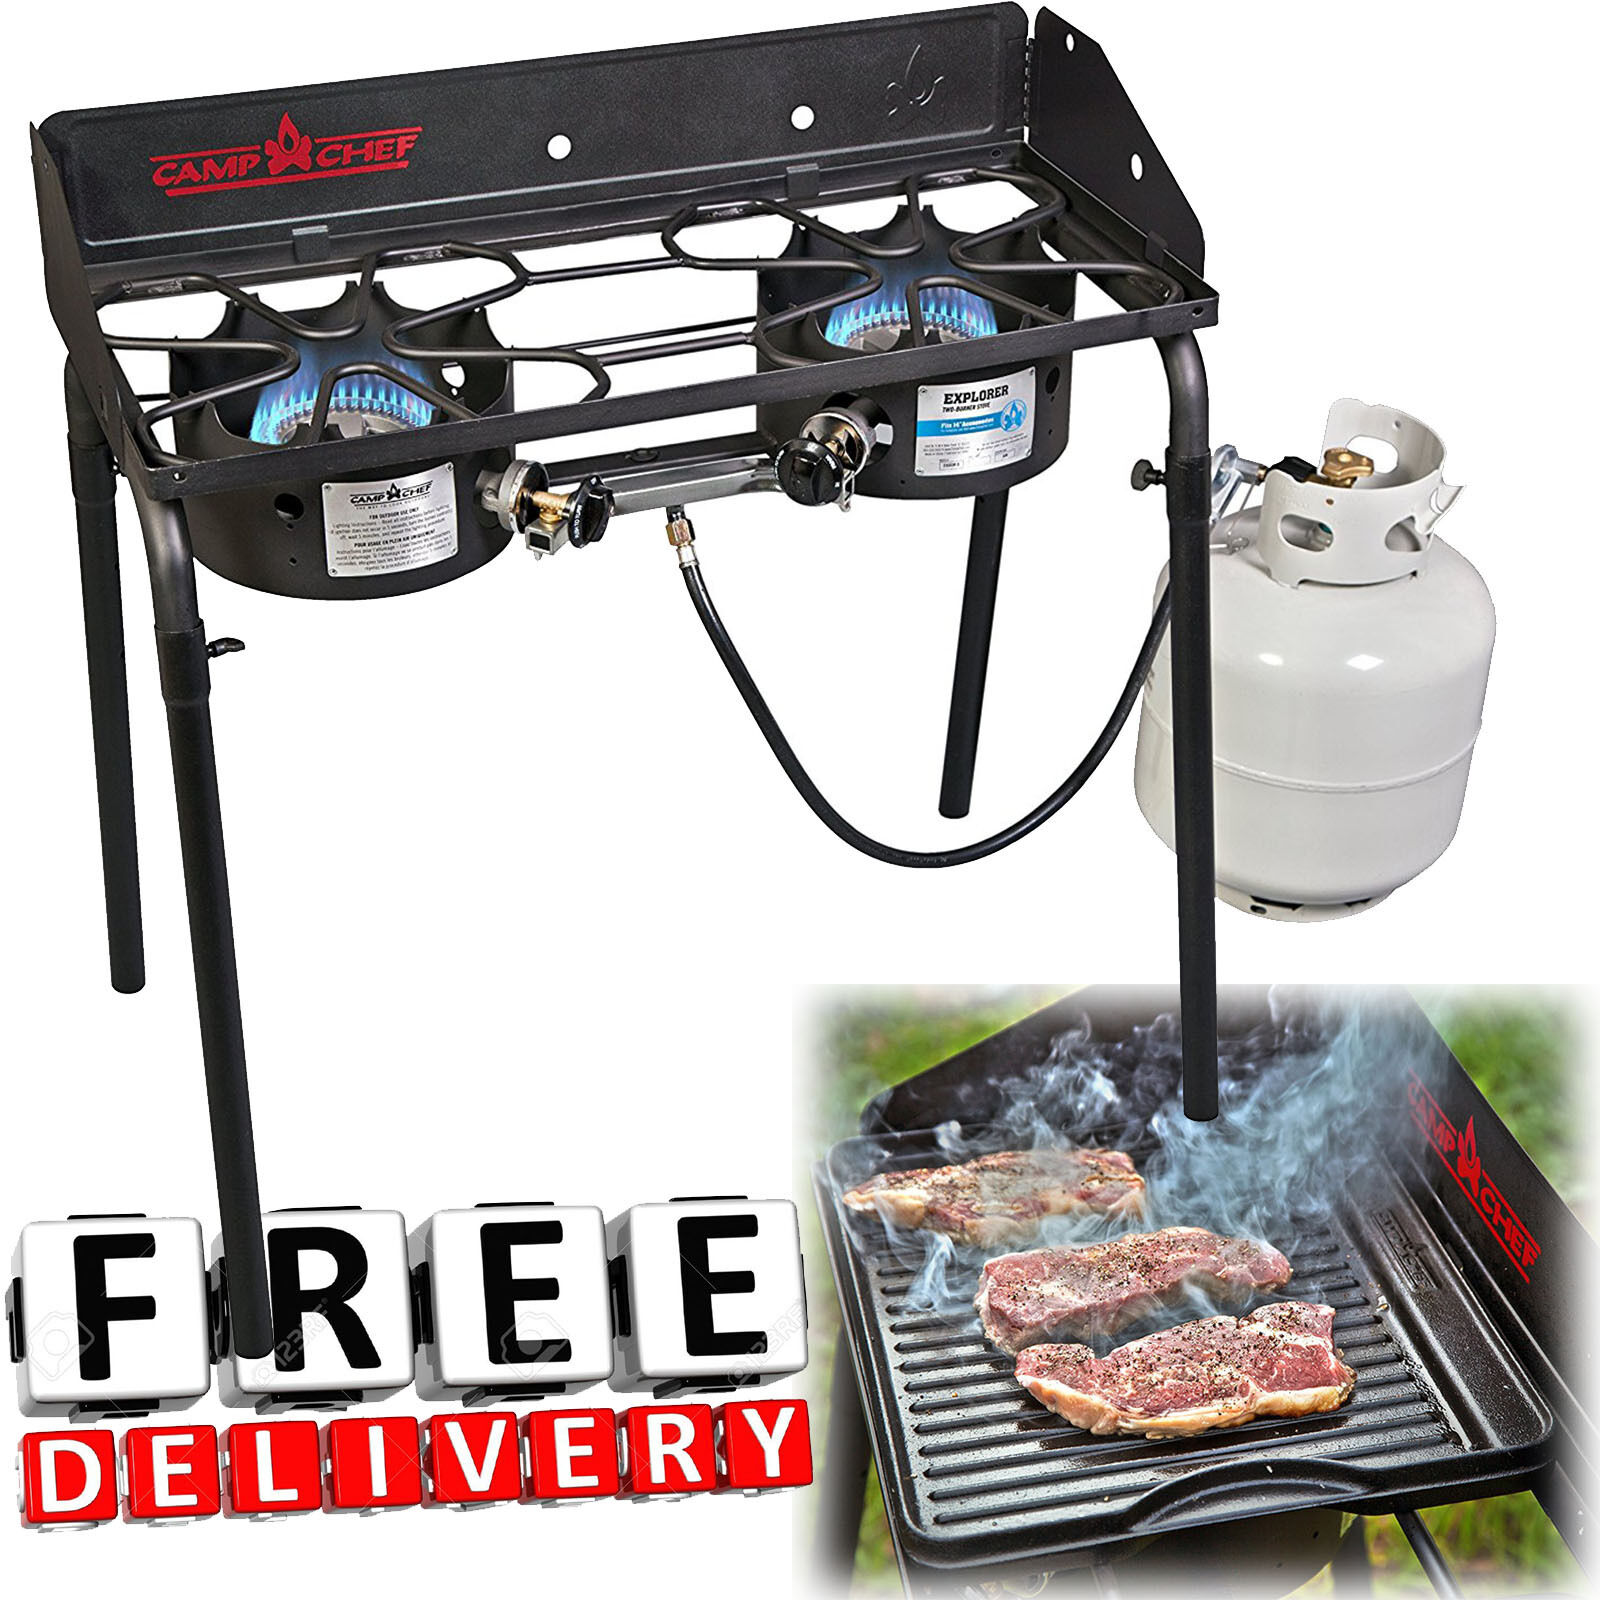 2 Burner Propane Stove Camping Camp Portable Cooking Grill B